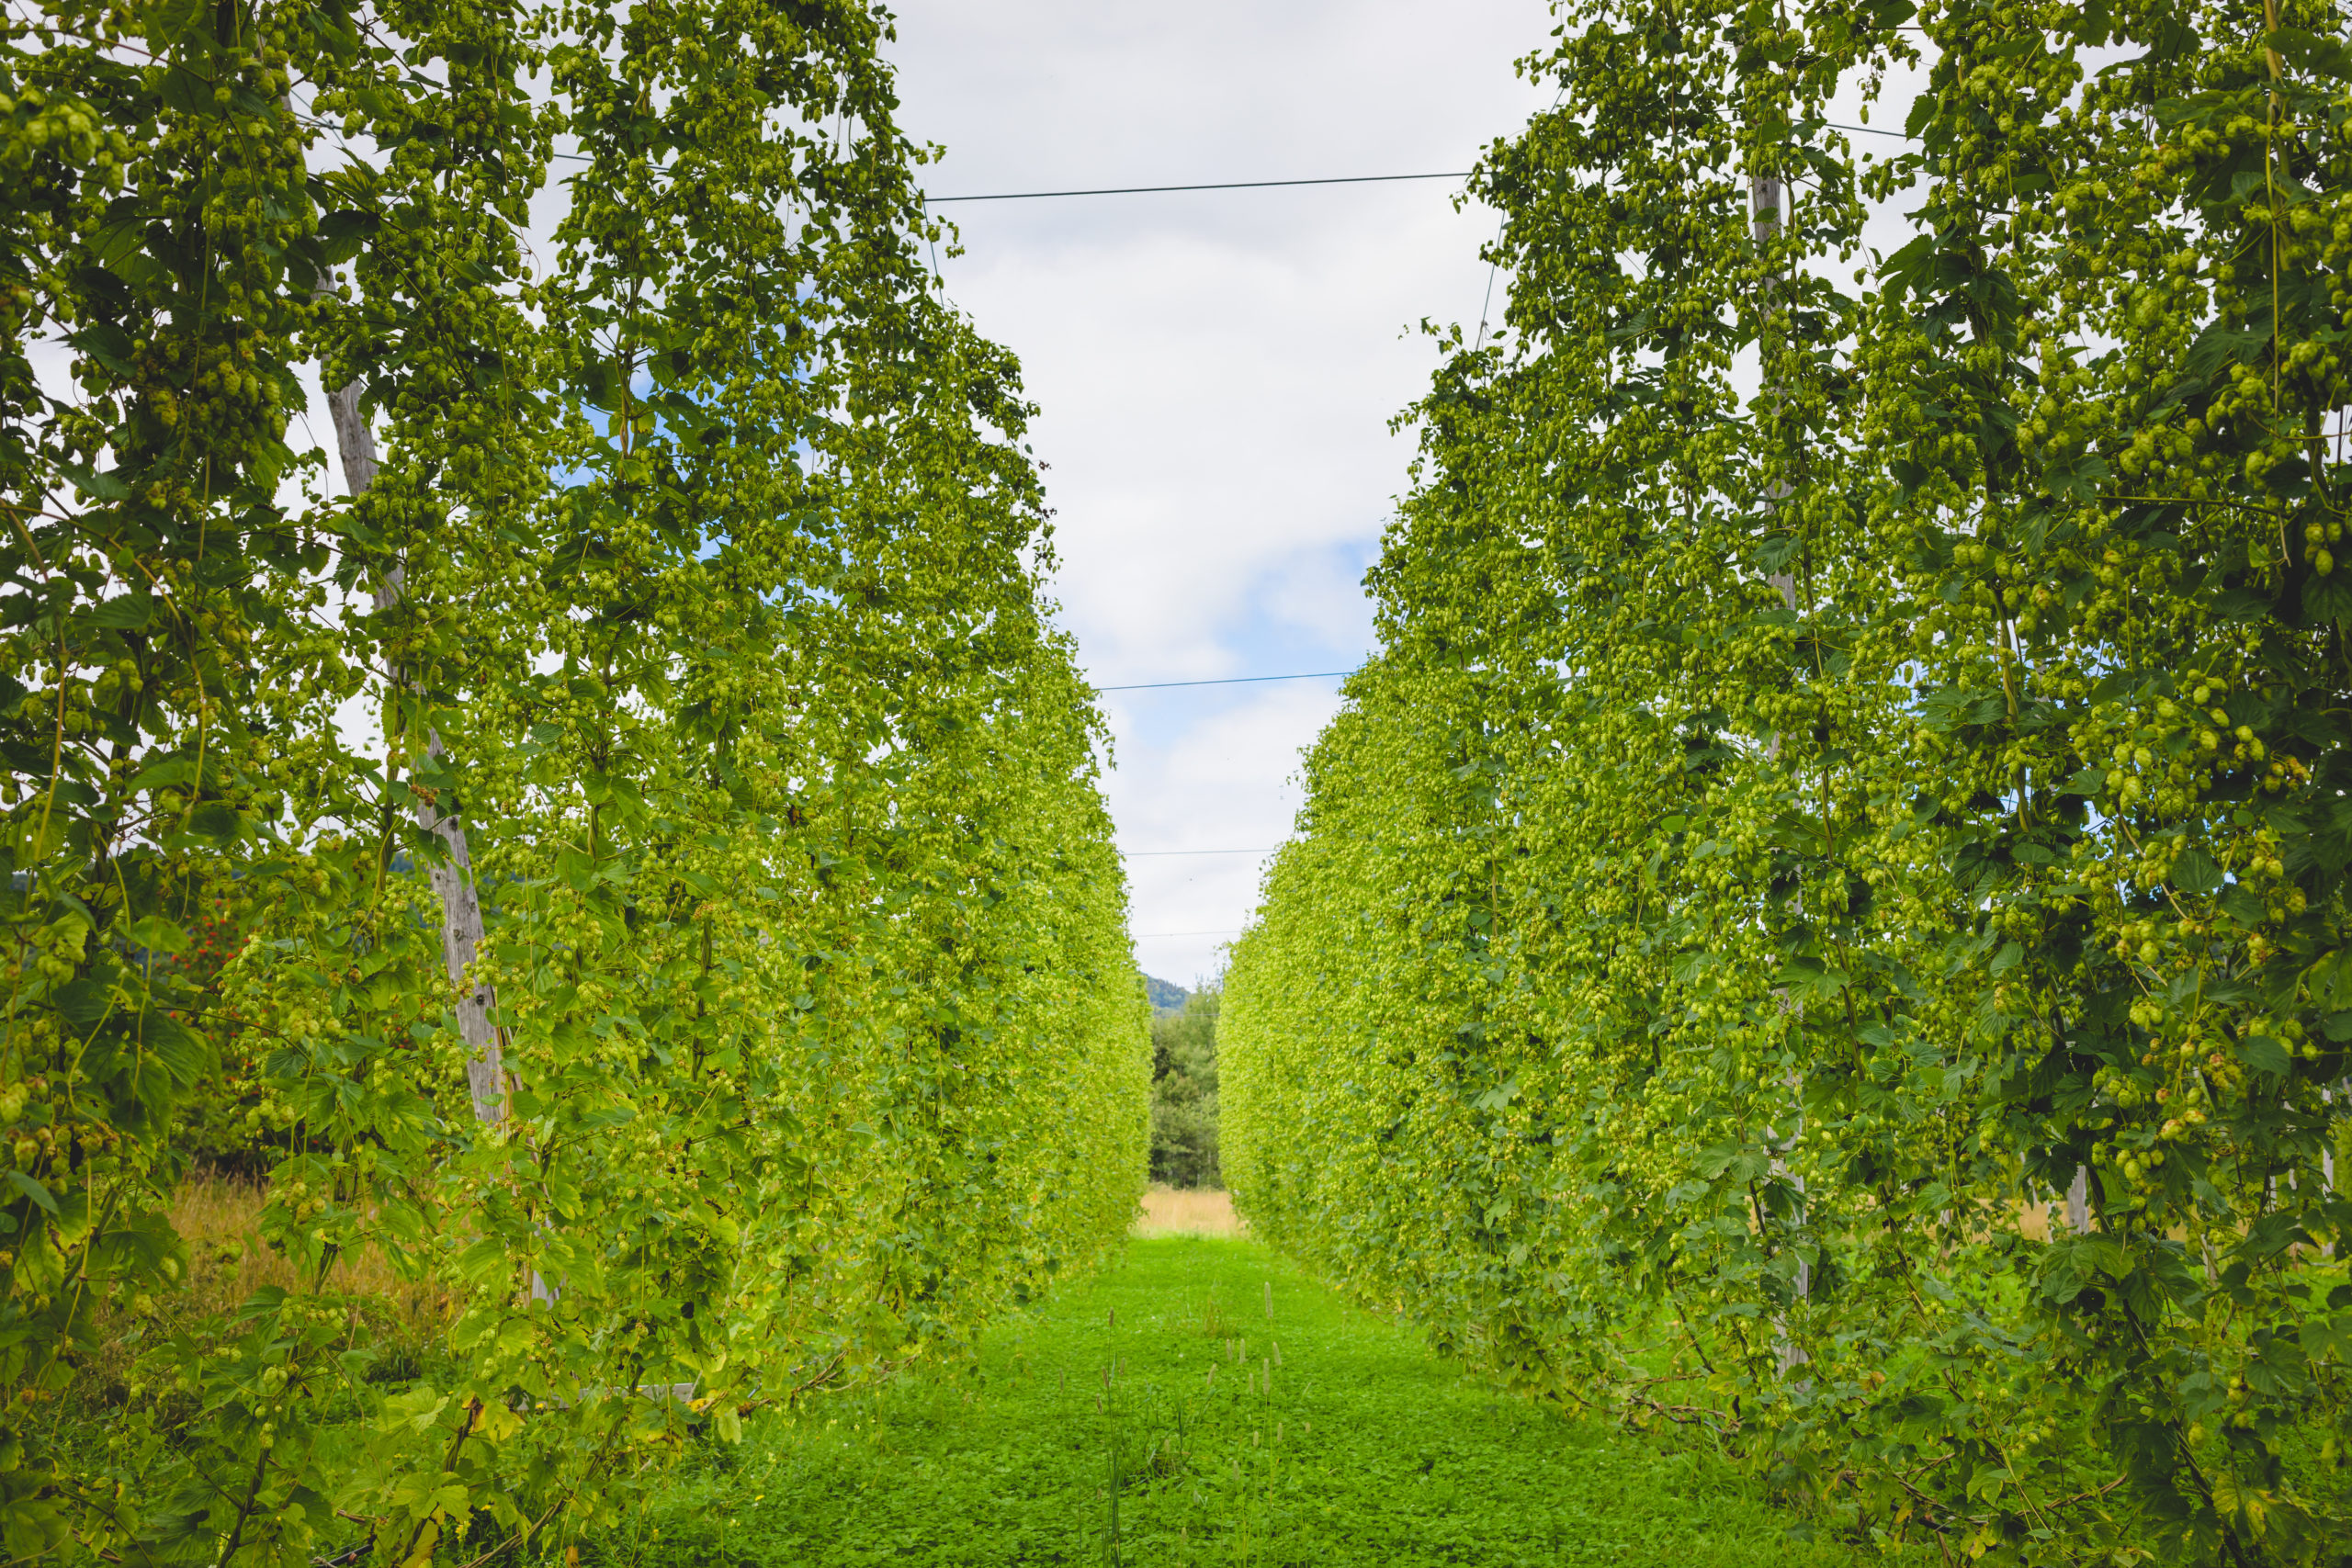 View to green hop field with tied plants prepared for harvesting.